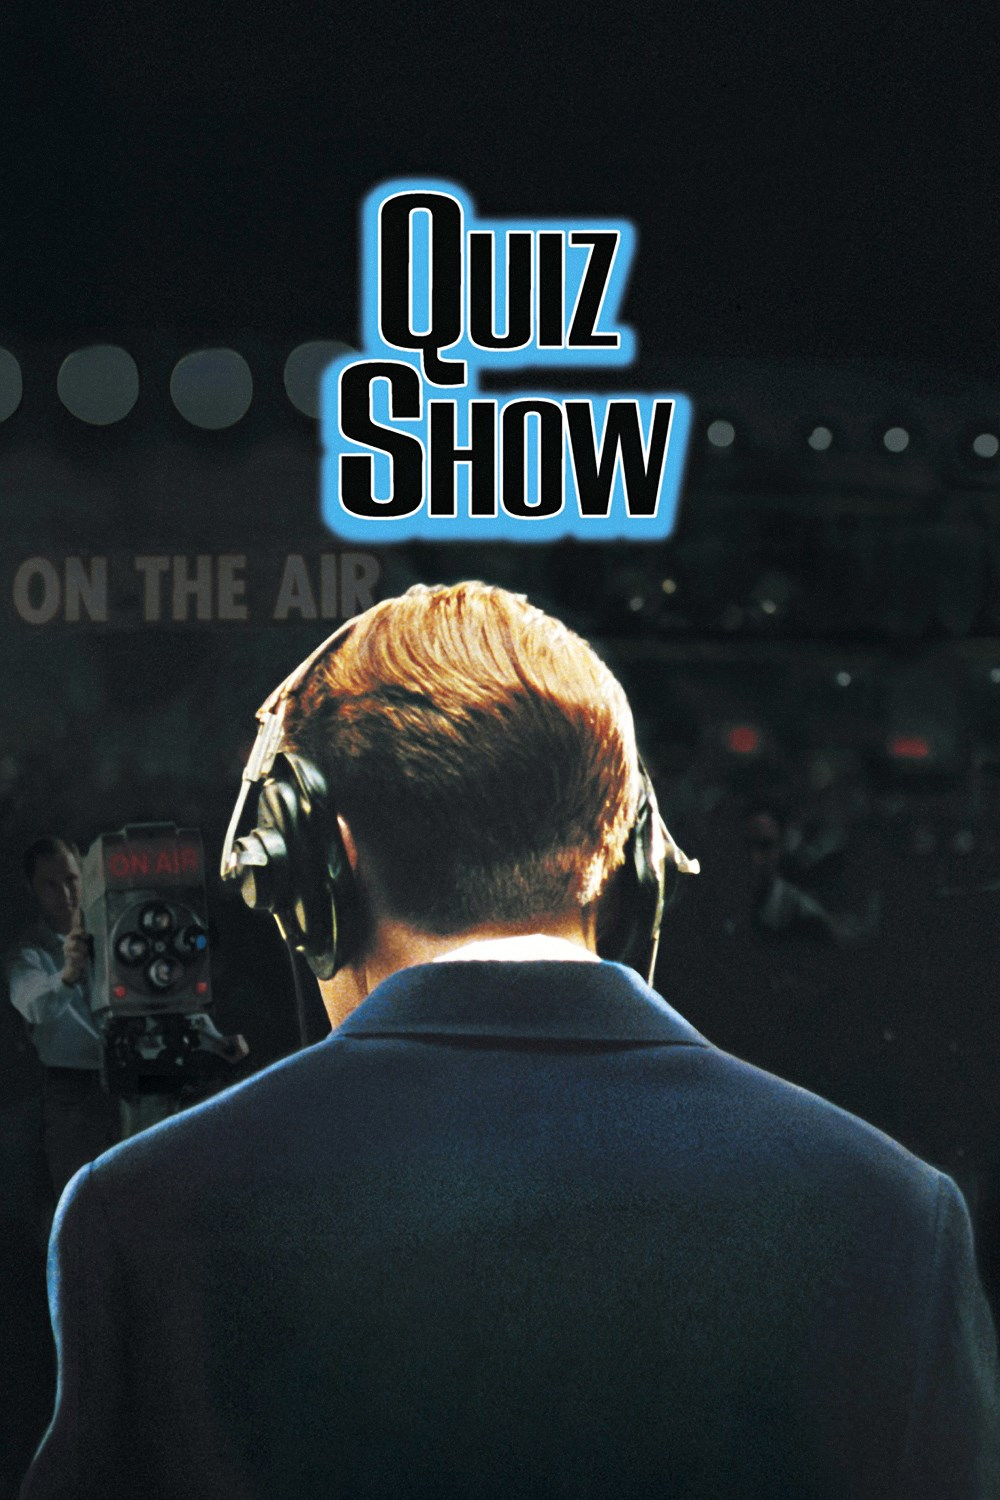 subtitles for quiz show poster